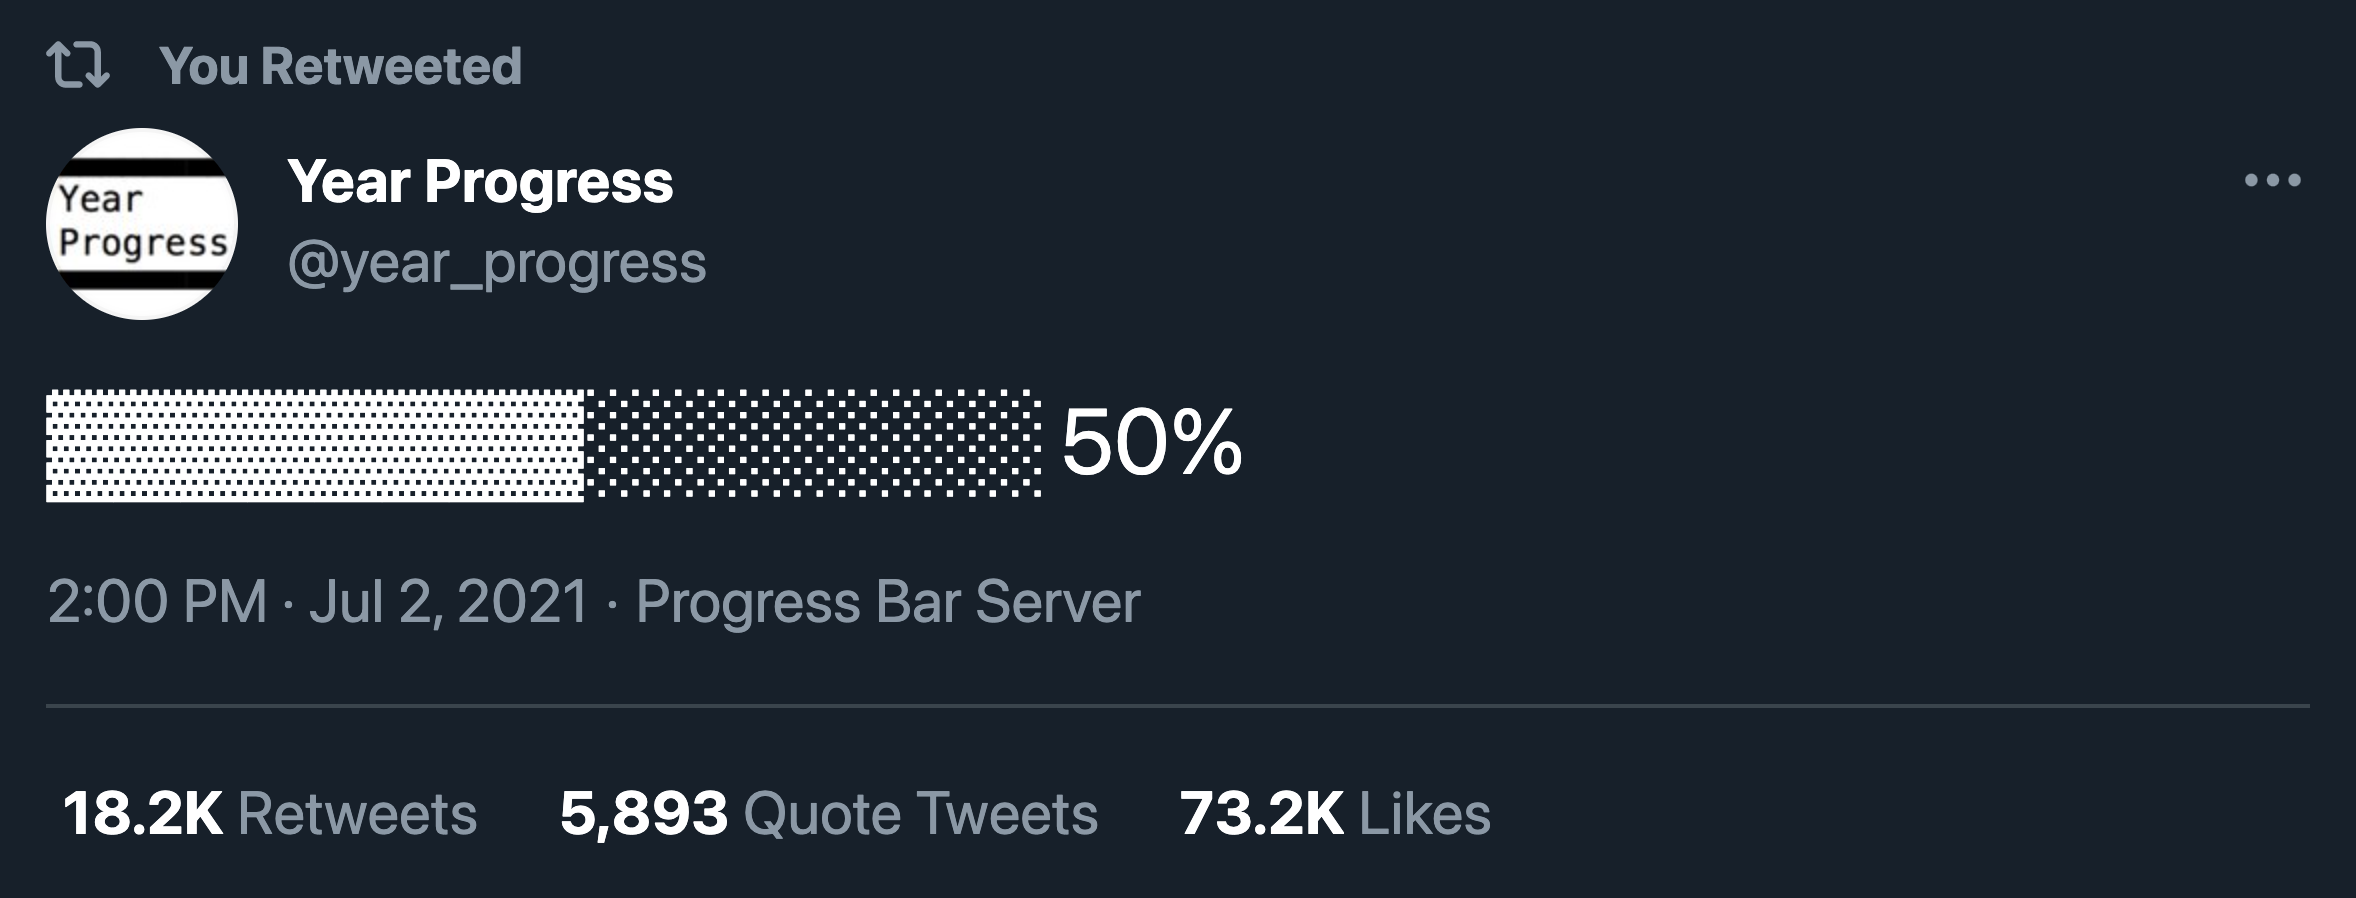 Tweet showing that the year is 50% done